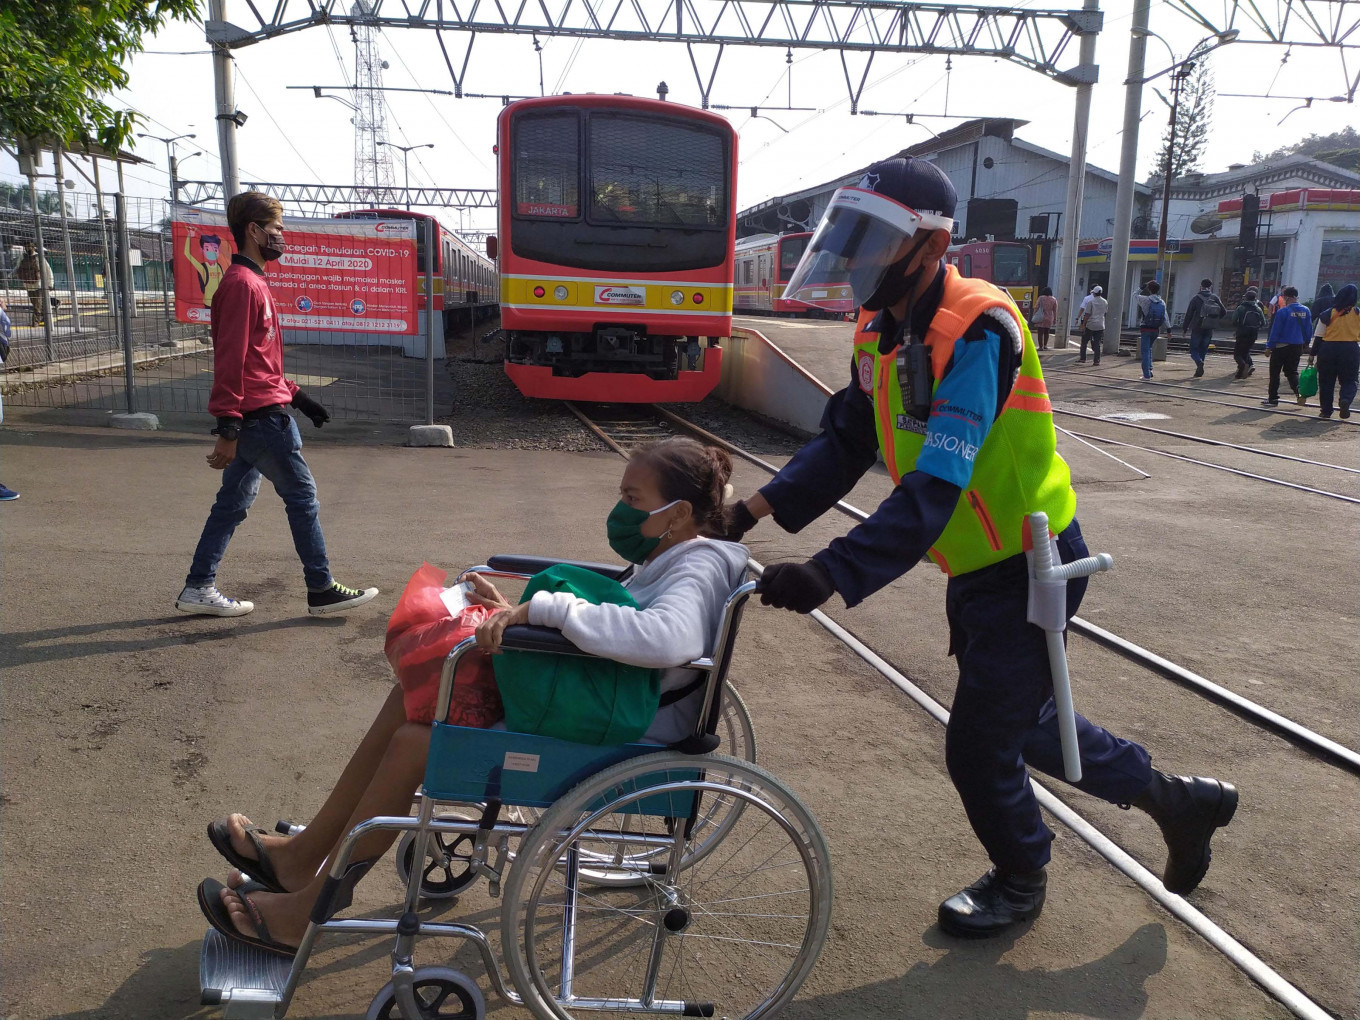 People with disabilities demand access to information, basic rights during pandemic